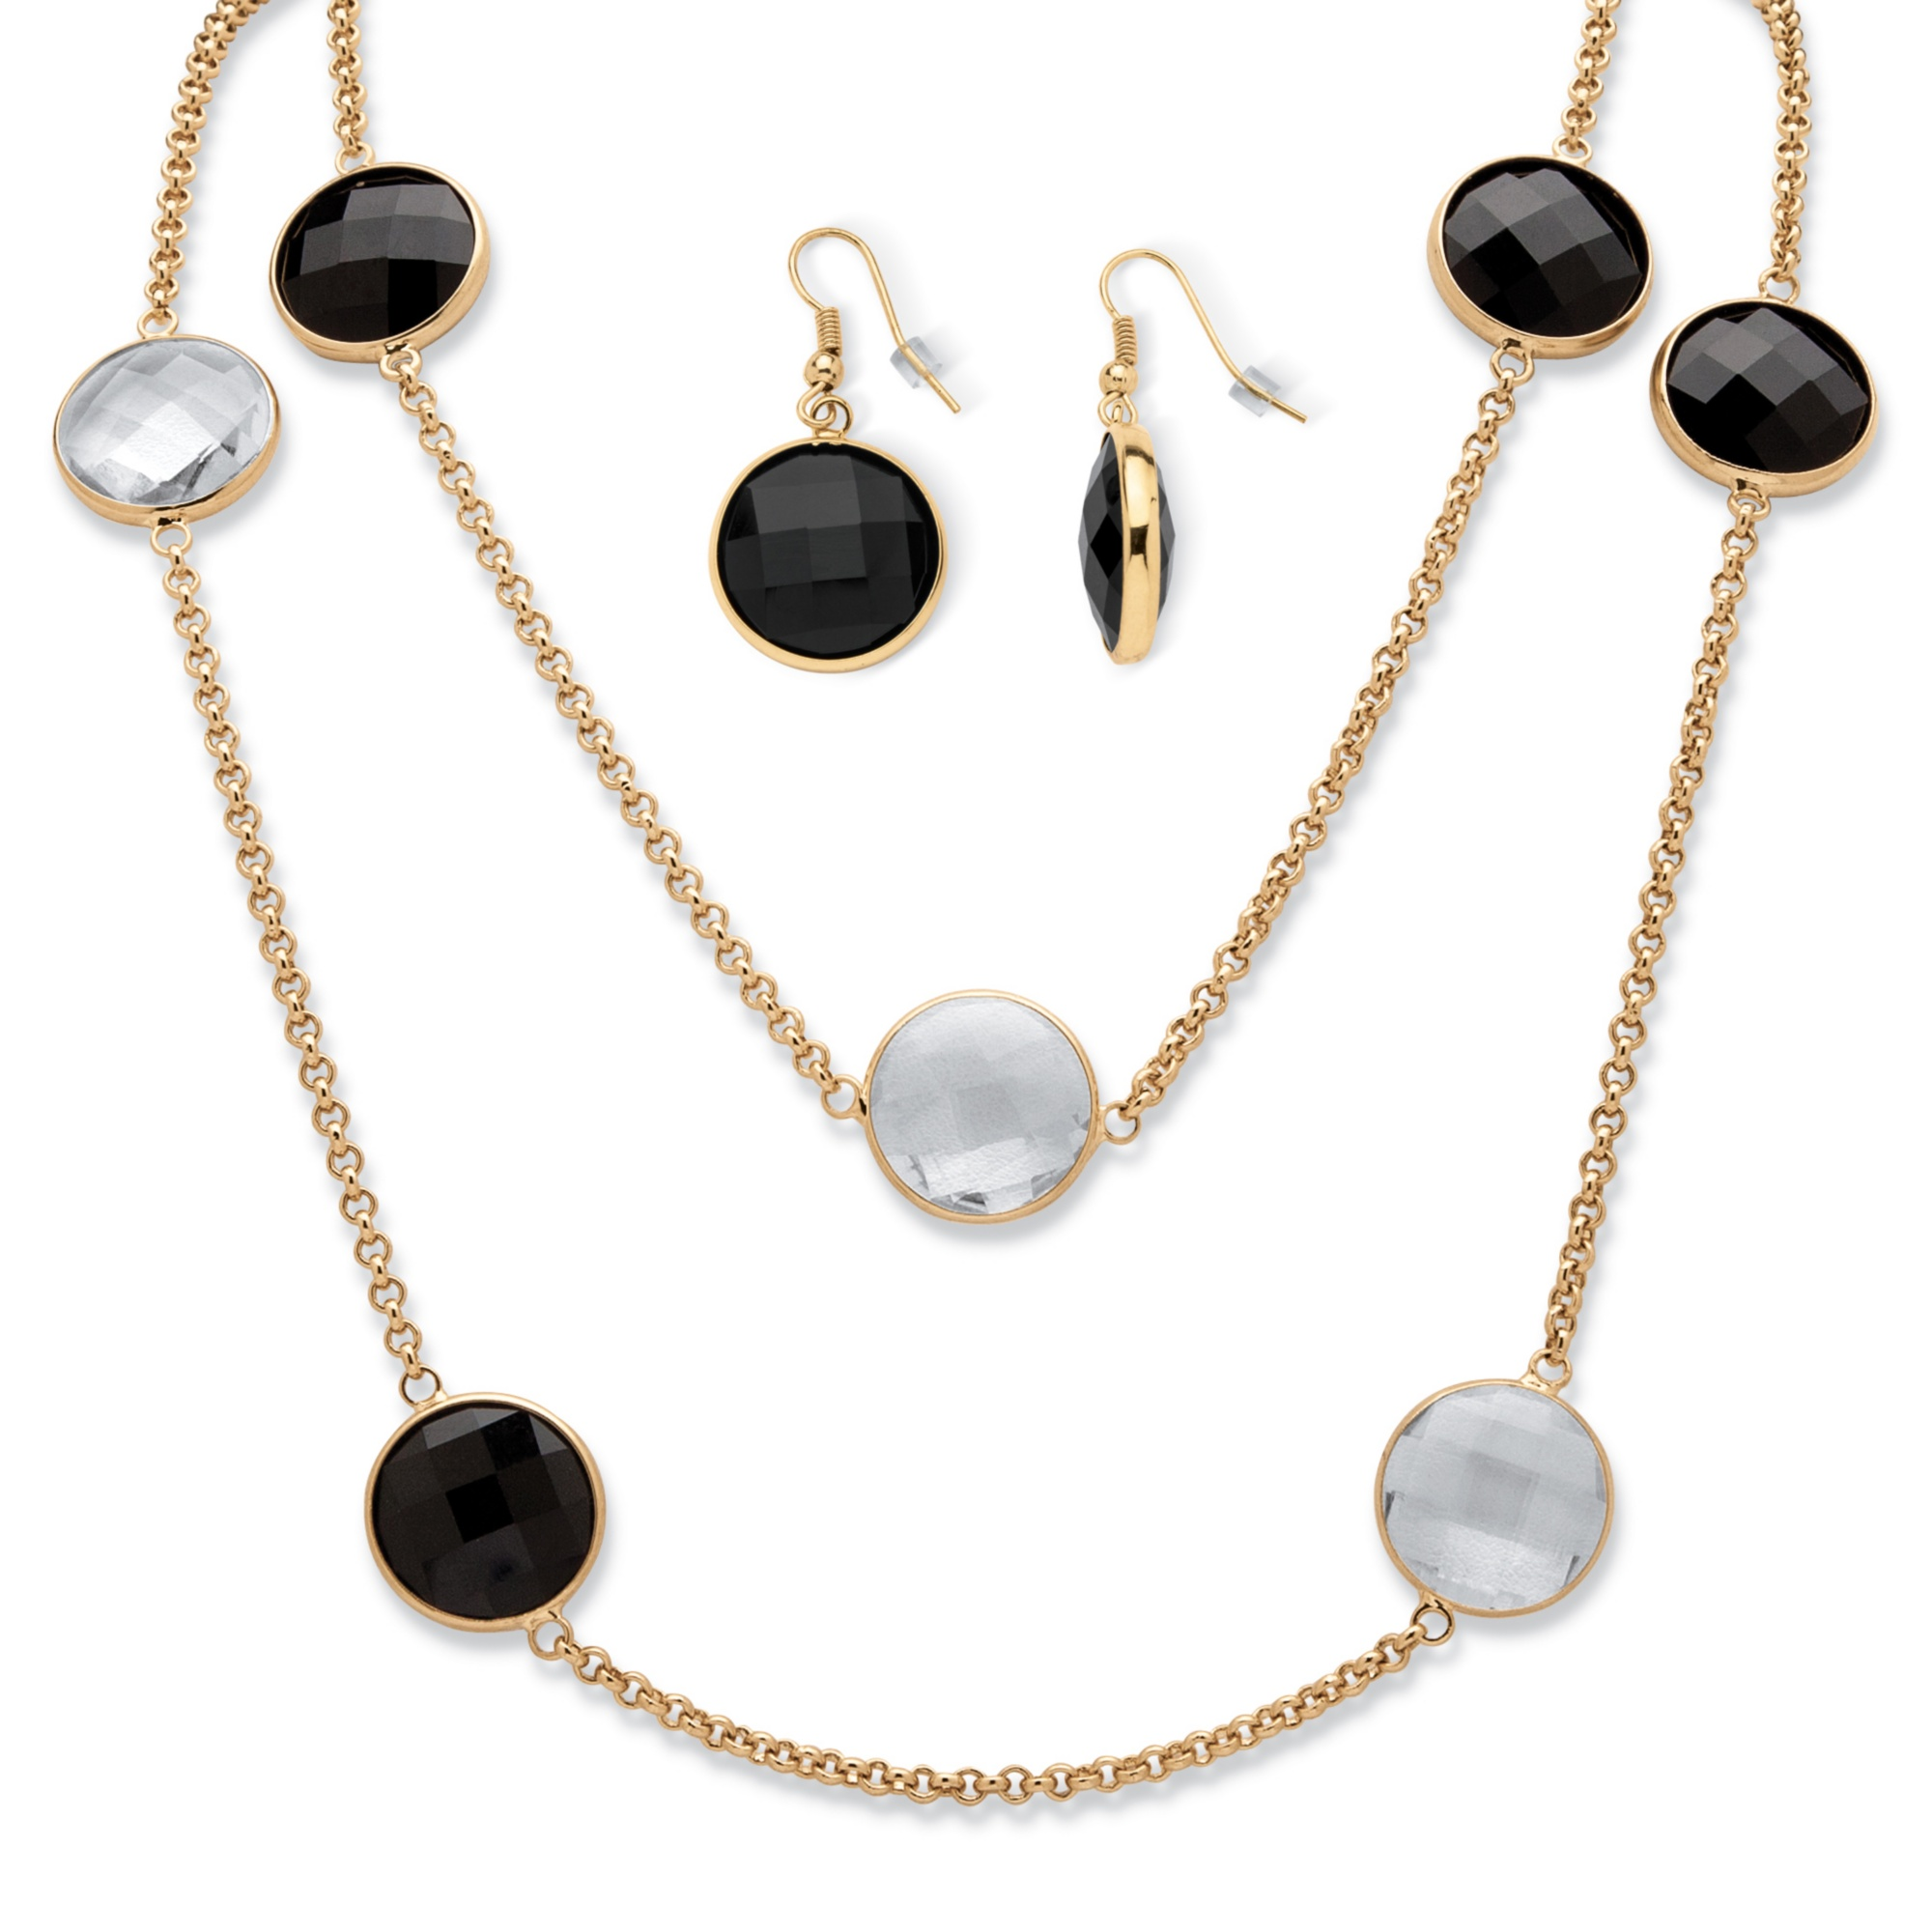 Round Checkerboard-Cut Black and White Crystal Station Necklace and Earrings Set in Gold Tone